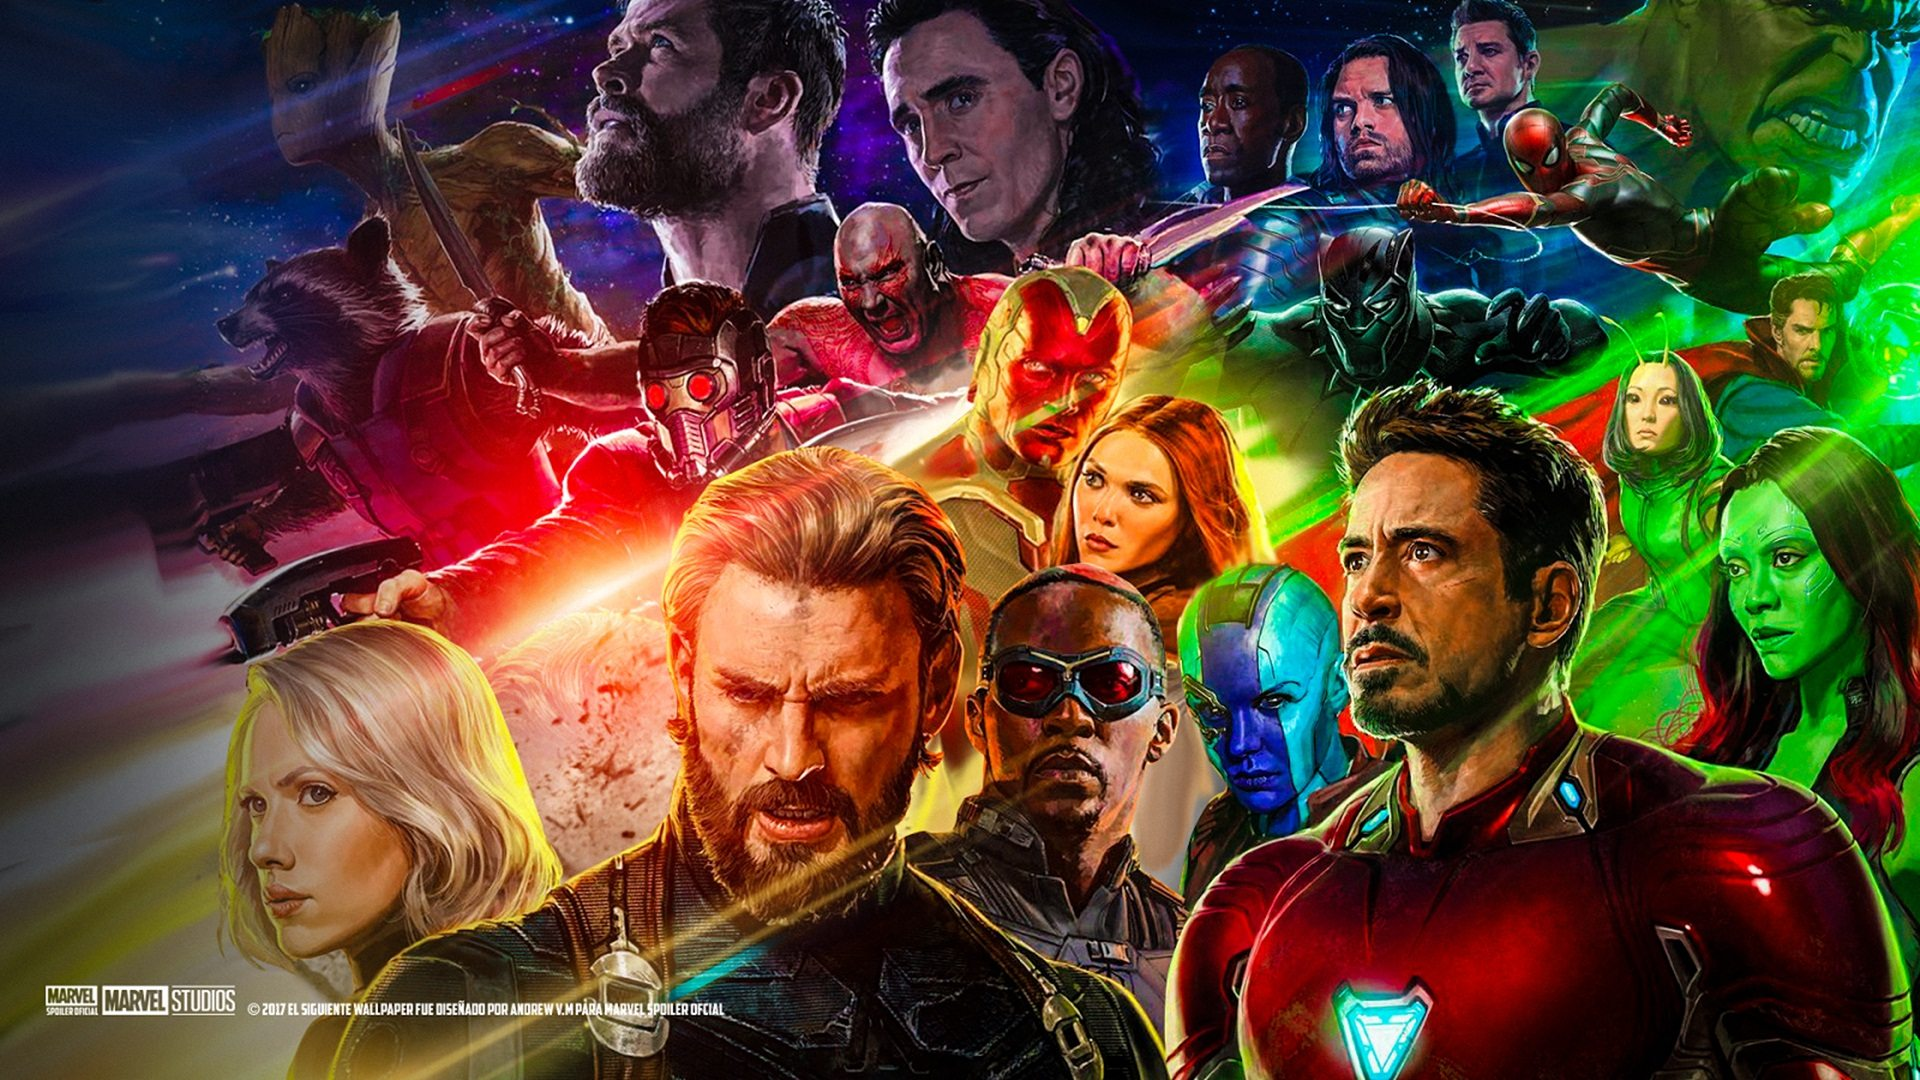 avengers-infinity-war-cast-hd-desktop-wallpaper-final | marketing